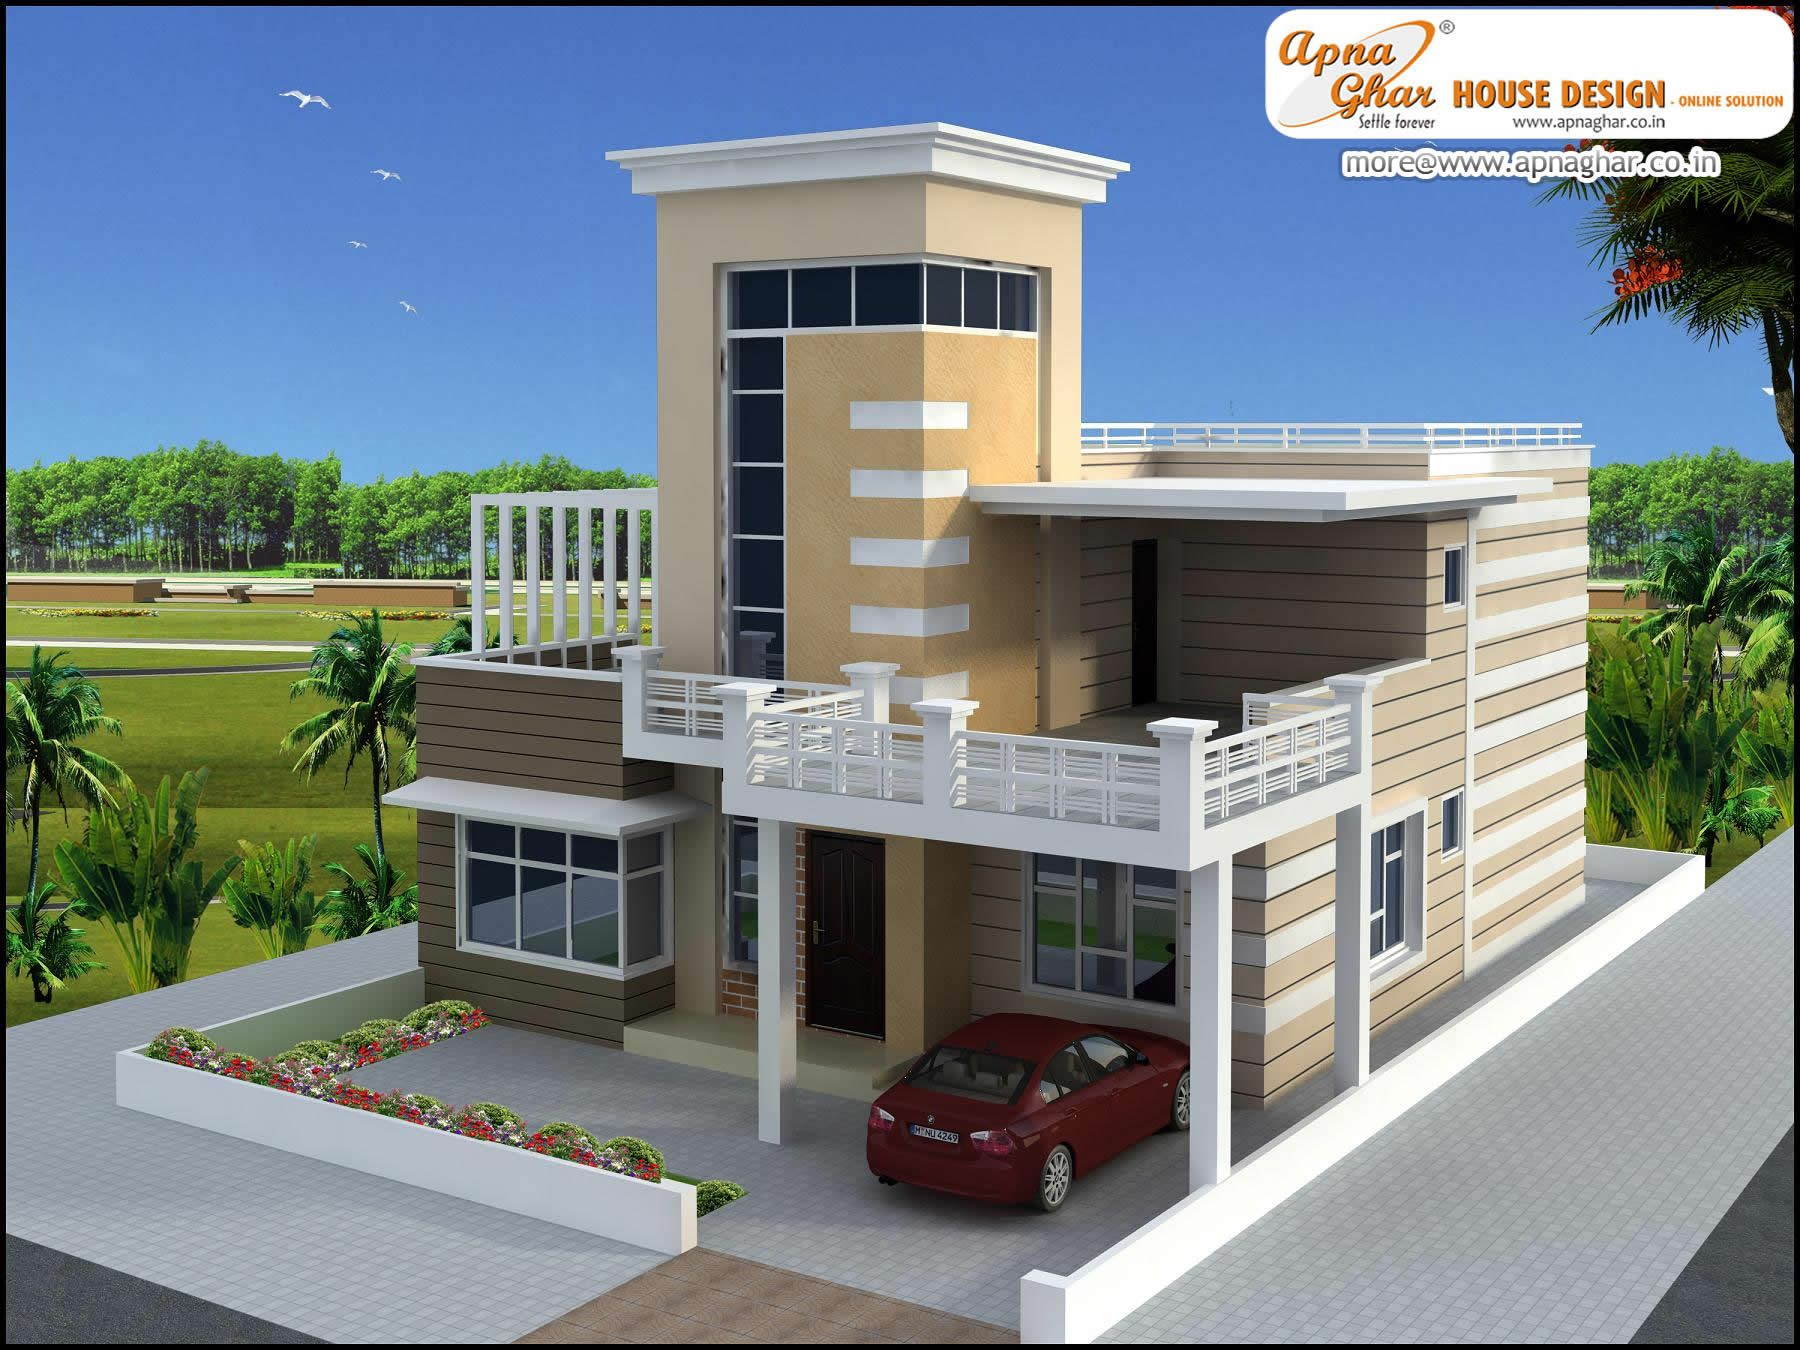 Luxury duplex 2 floors house design area 252m2 21m x 12m click on this link http www House design sites